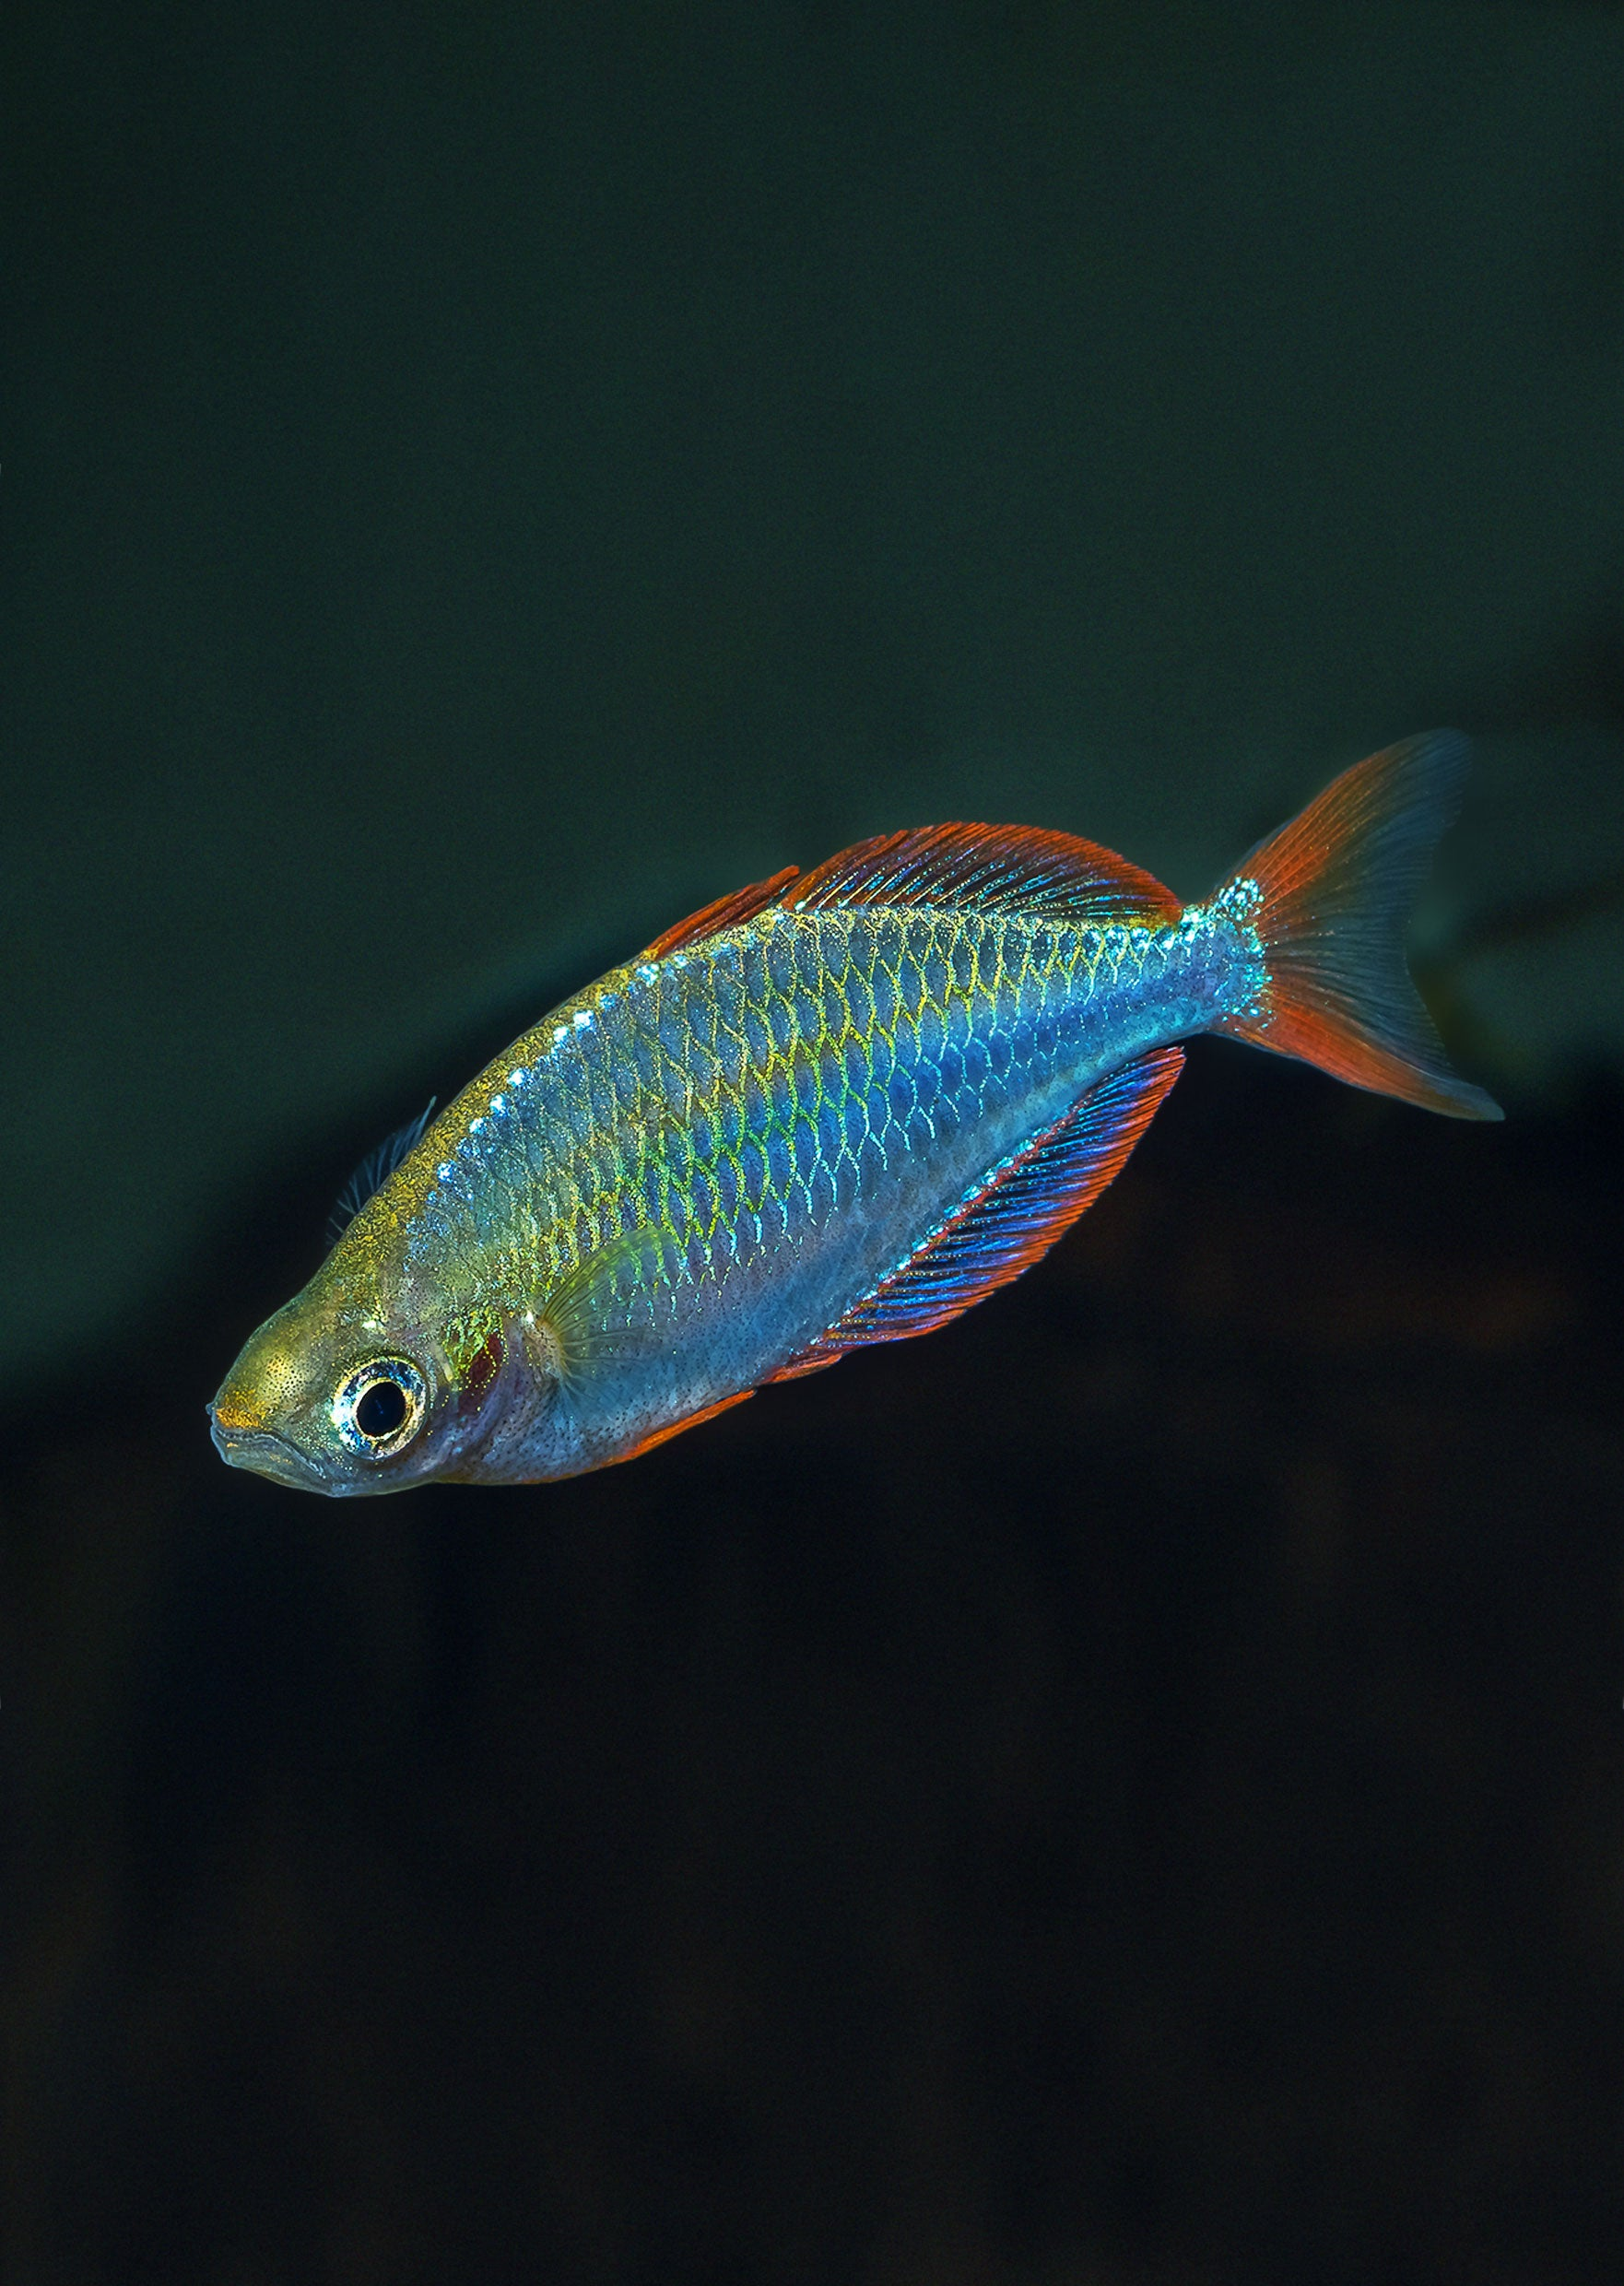 Rainbowfish - Neon Dwarf